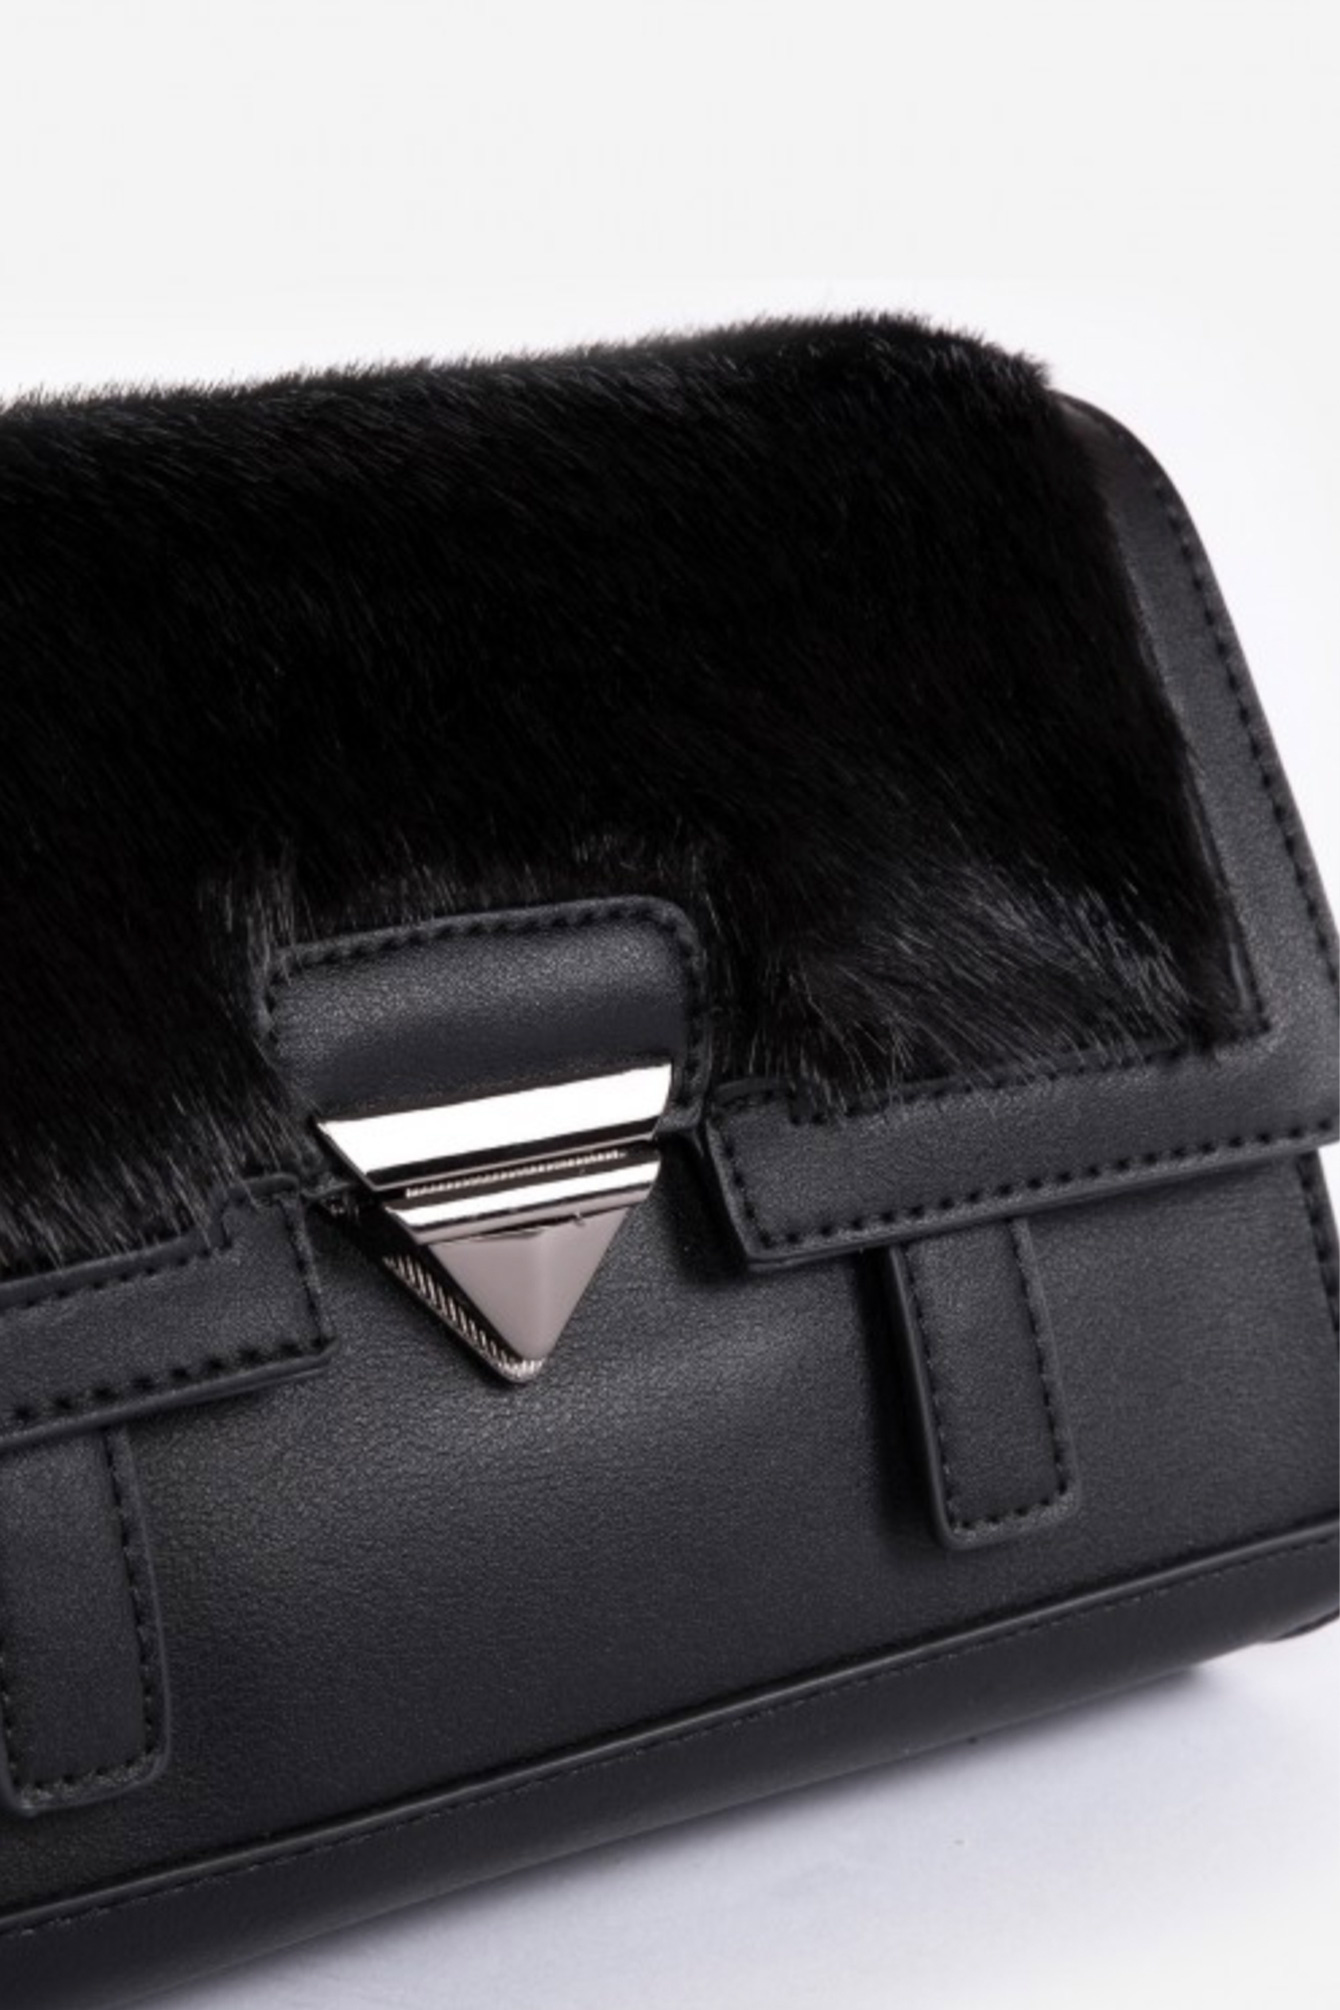 Faux fur bag black